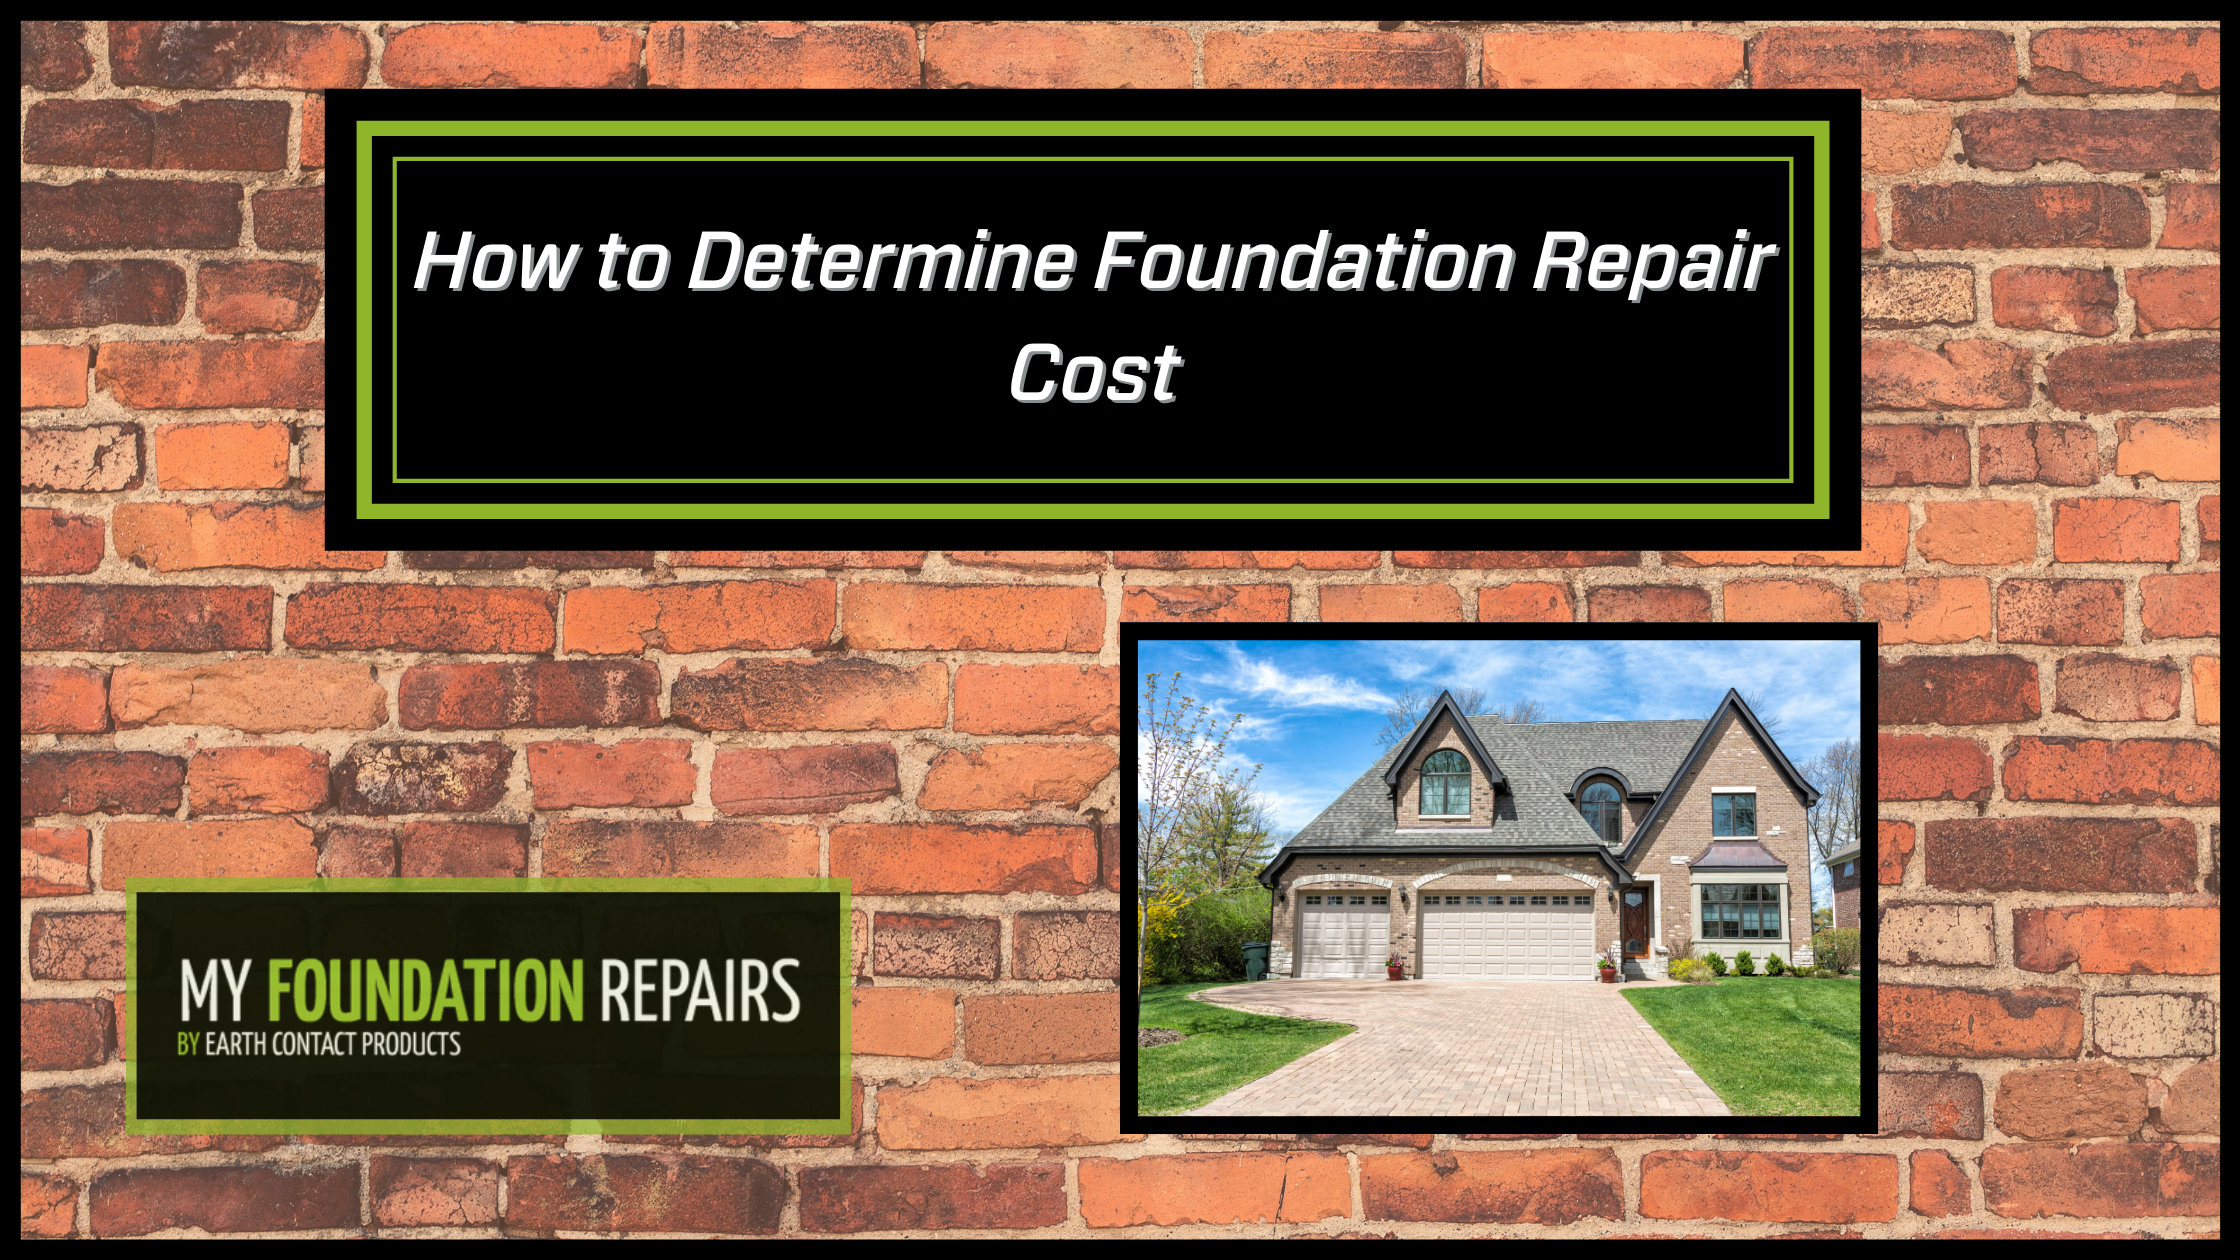 How to Determine Foundation Repair Cost